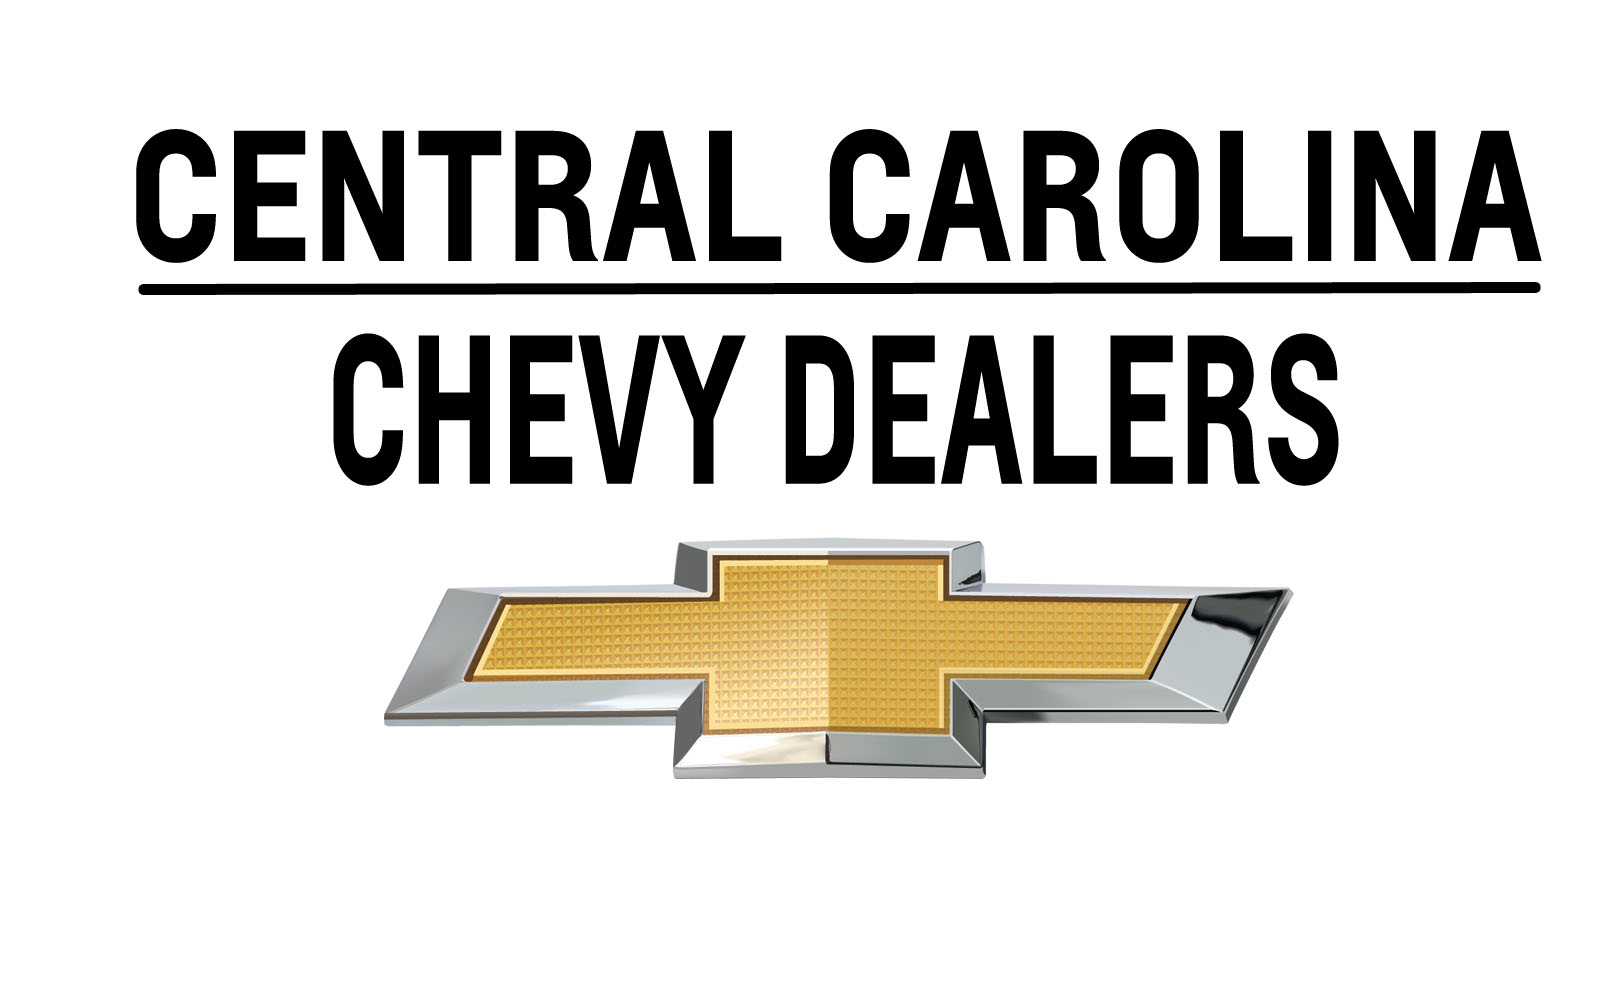 Chevy dealers